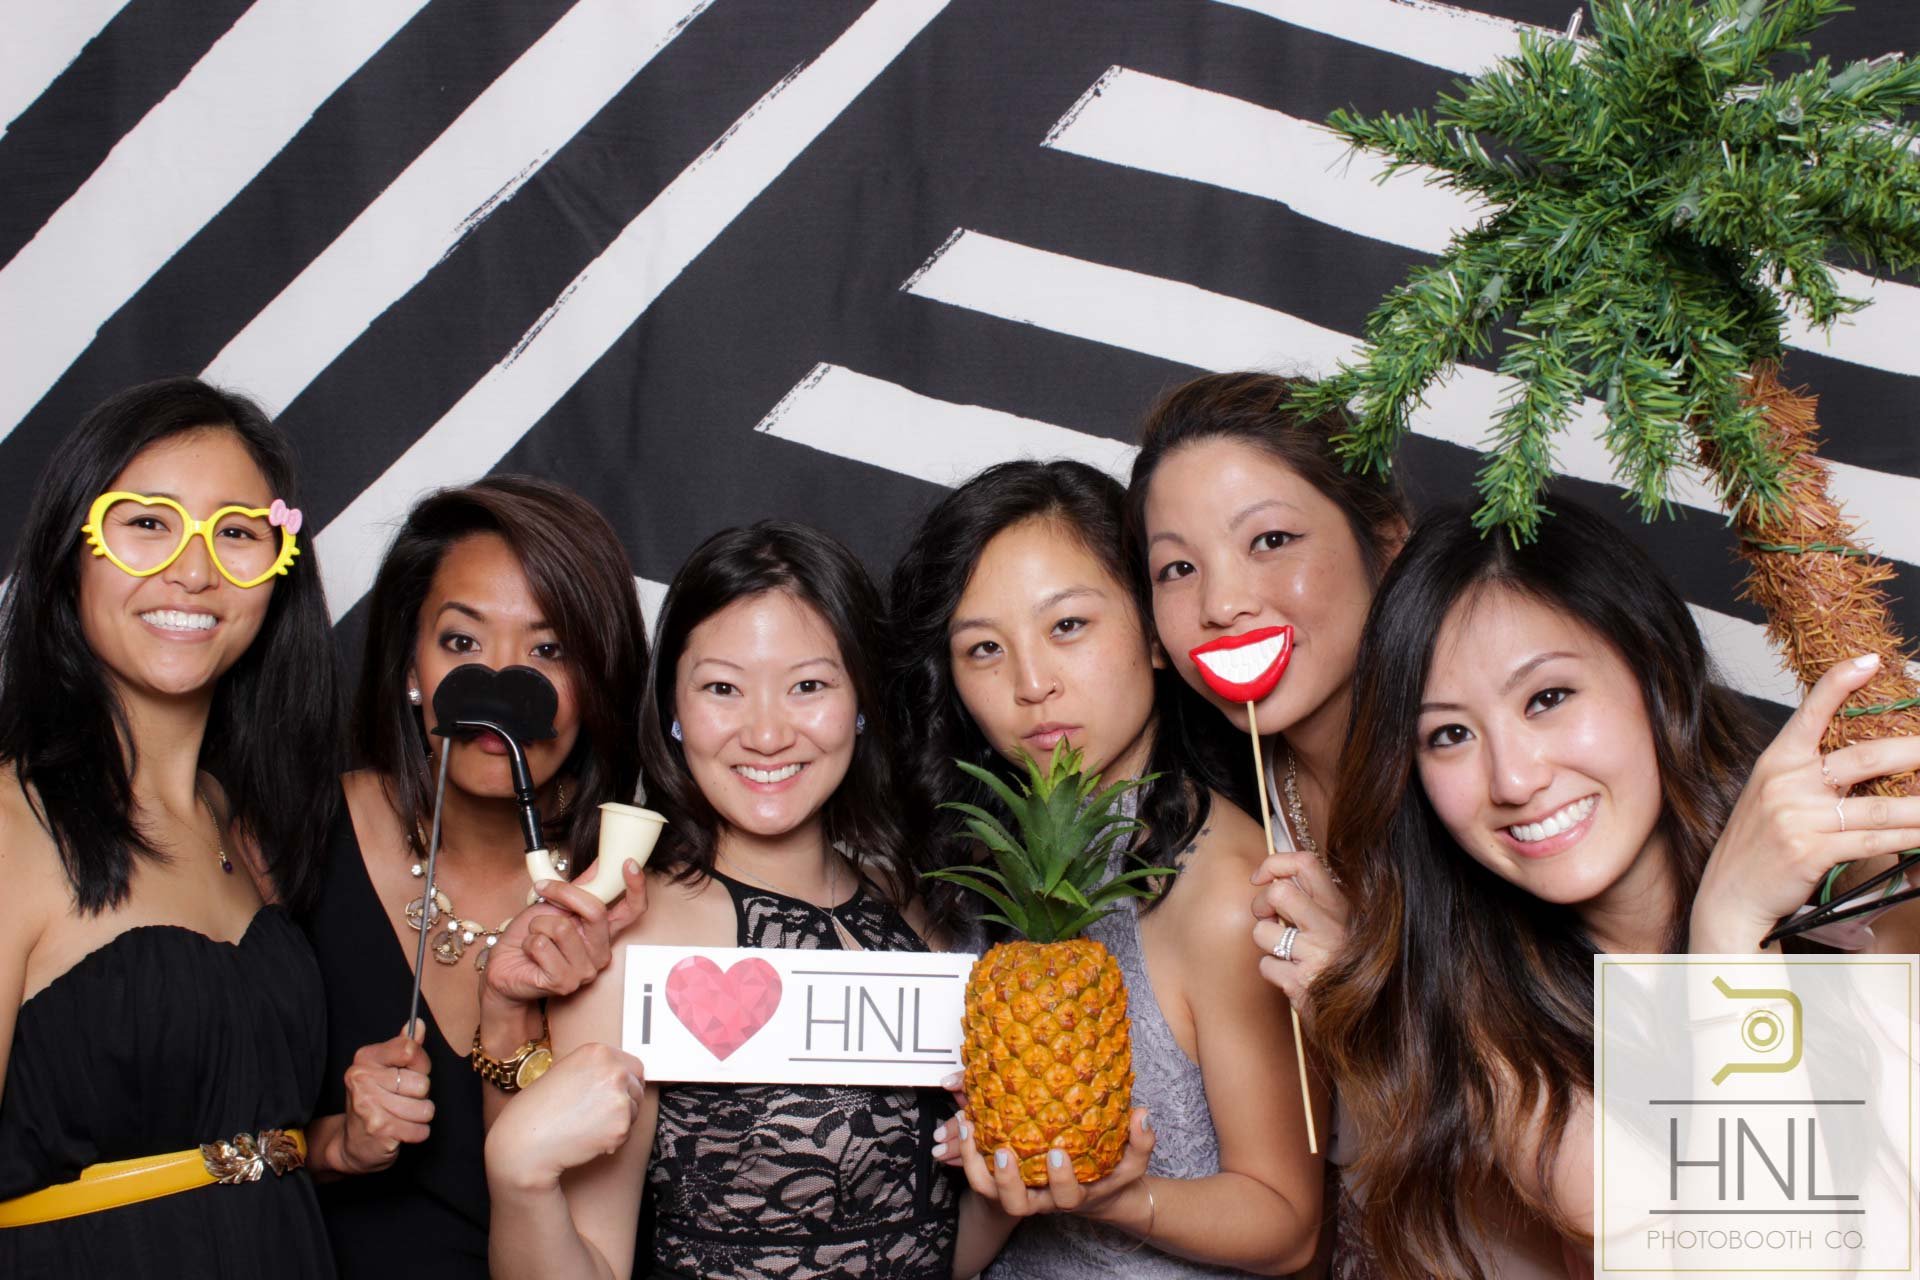 PRIVATE PARTIES AND CELEBRATIONS - Whether it's a birthday, graduation or private party, our modern-styled photo booths are seriously the most fun you can have this side of Pacific Ocean. We give you everything you need to make a party and are open to everything and anything to make it yours.